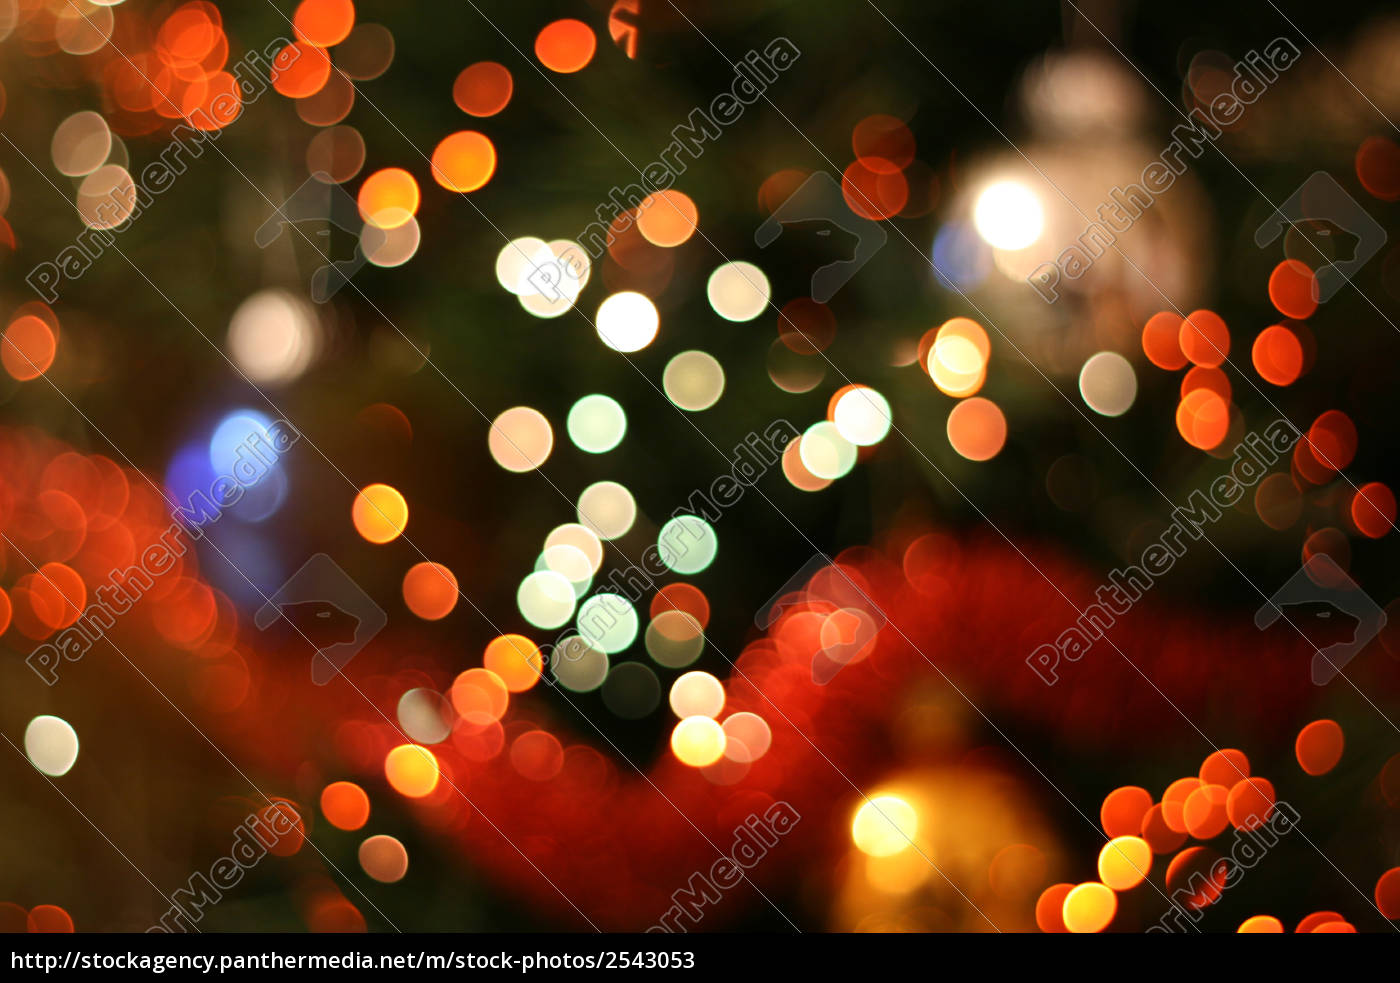 abstract, christmas, background, 02 - 2543053